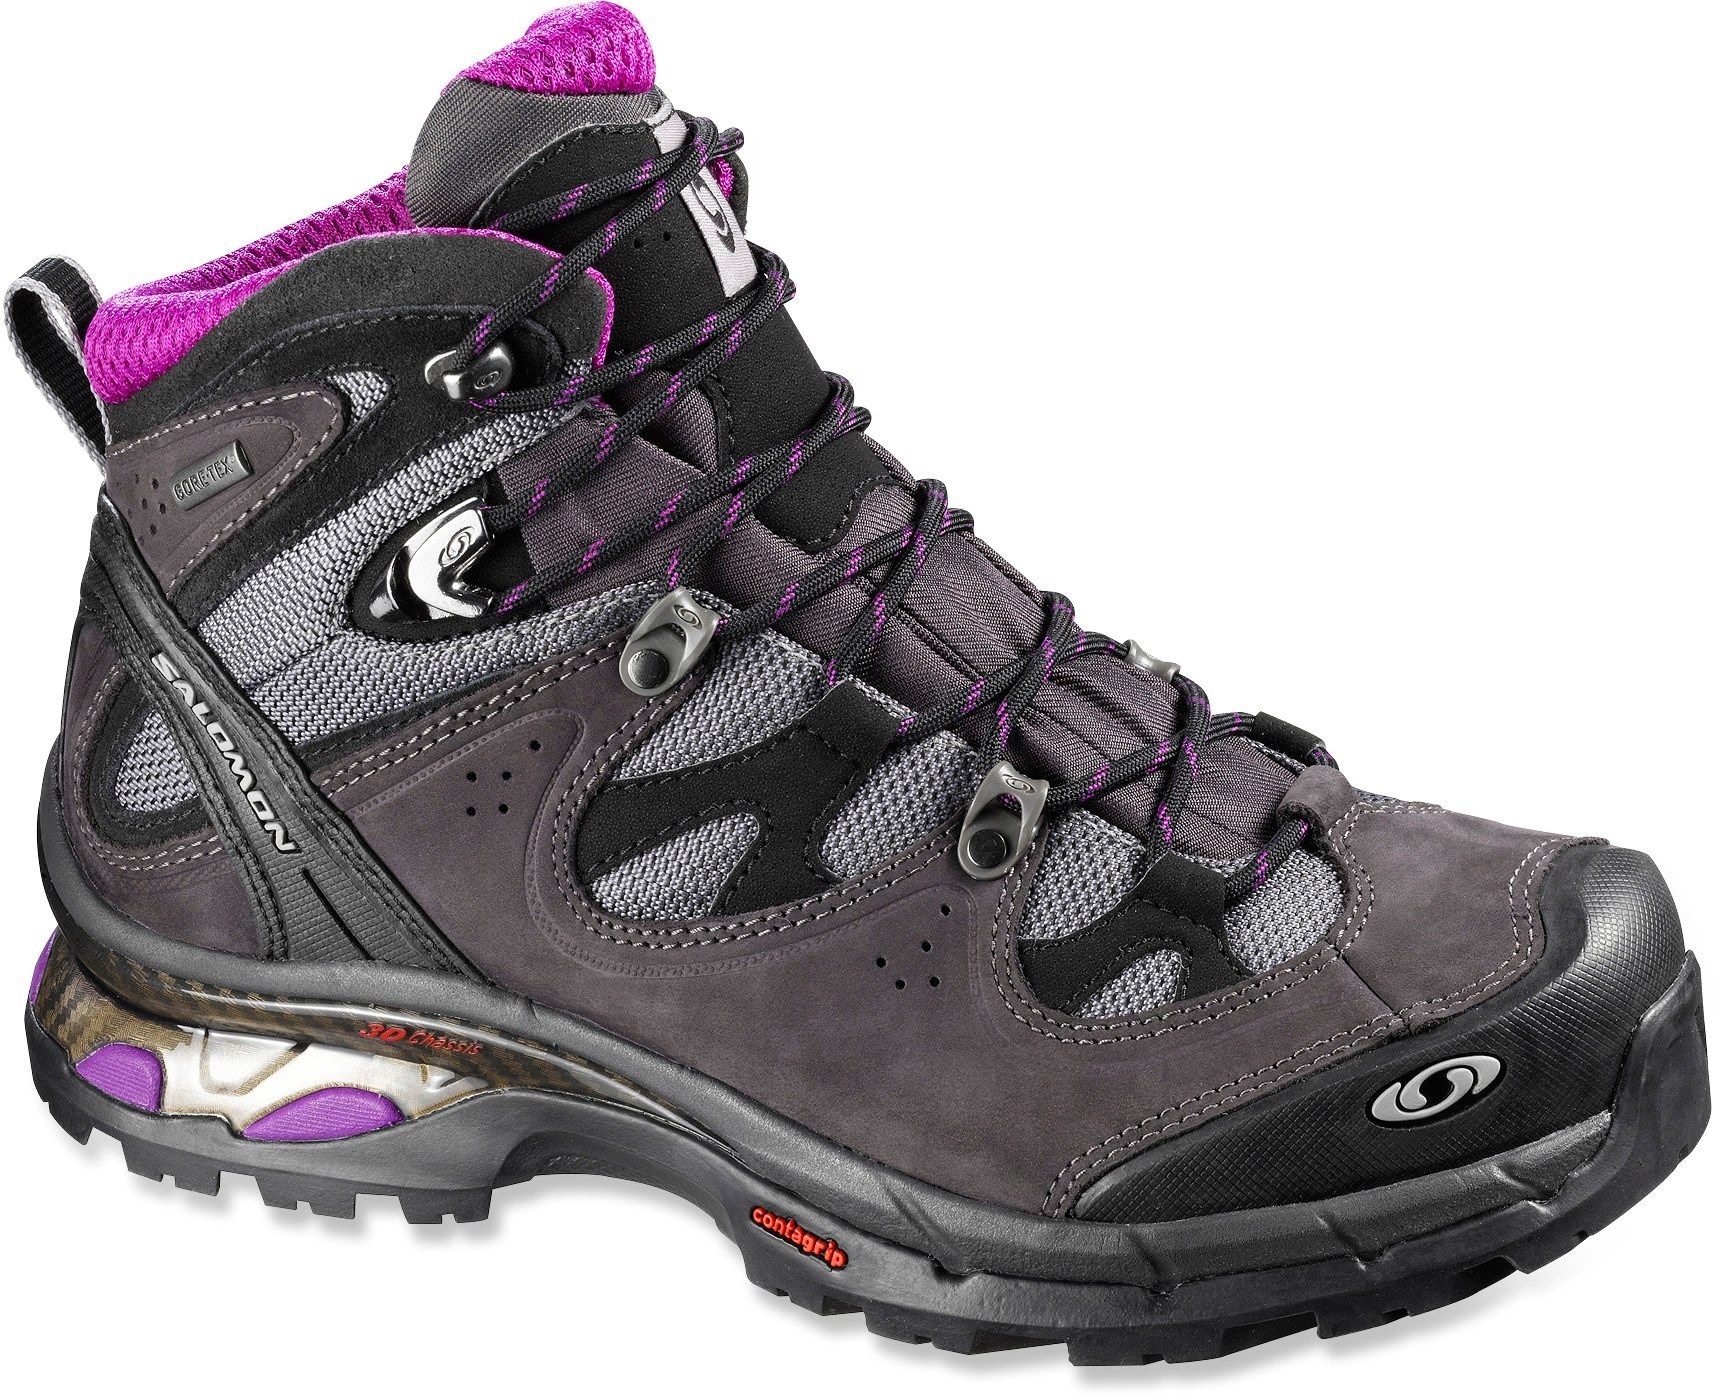 Salomon GORE TEX Women's Hiking Shoes | REI Co op